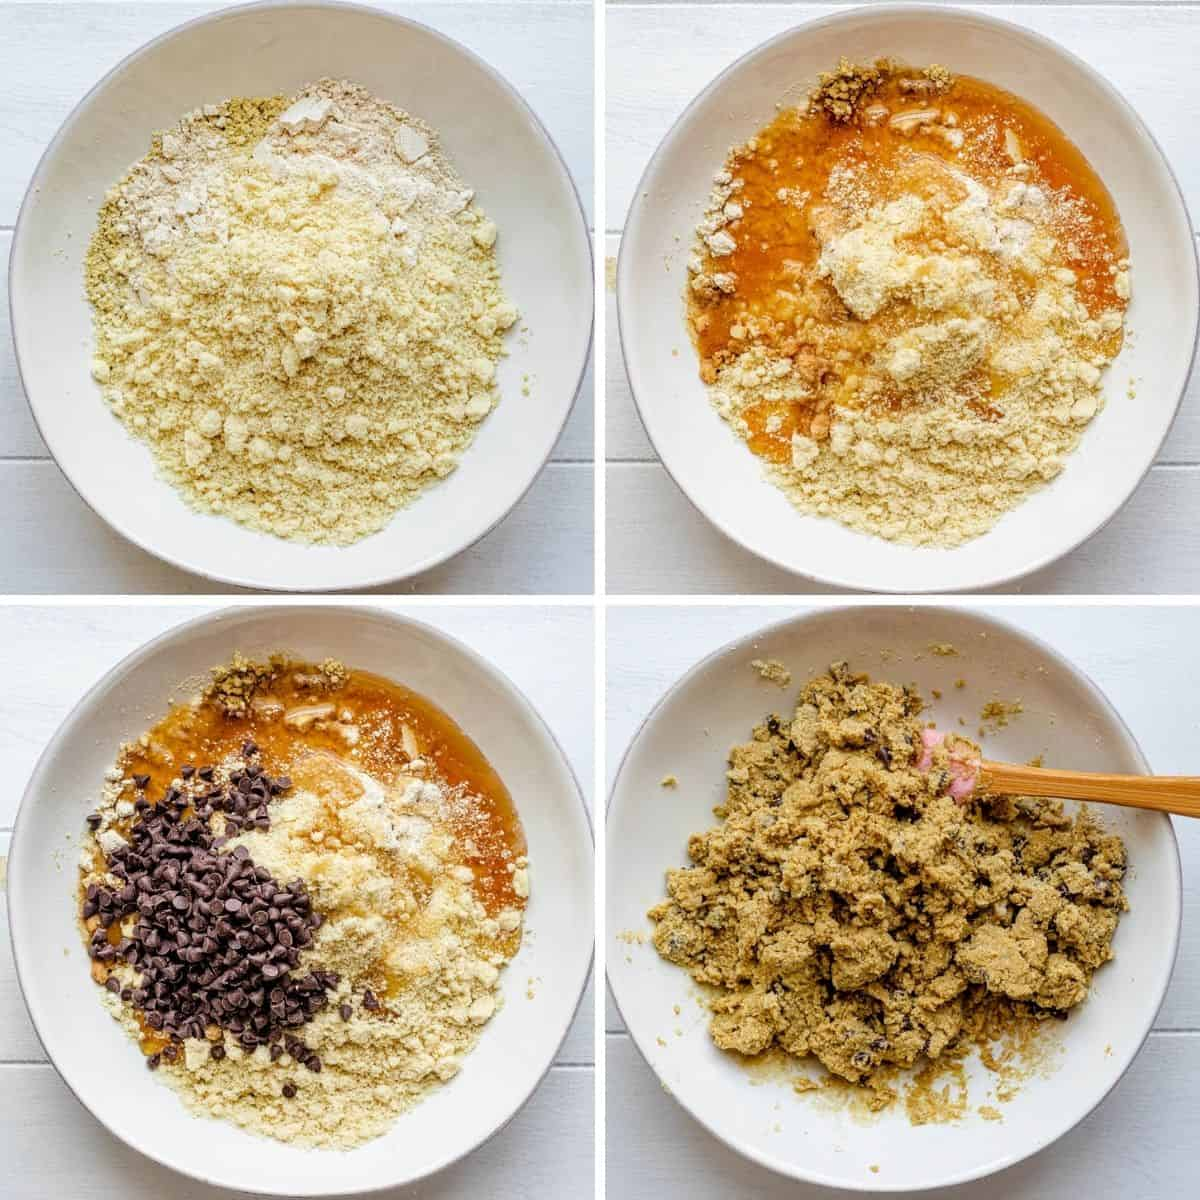 4 image collage to show how to make the protein balls